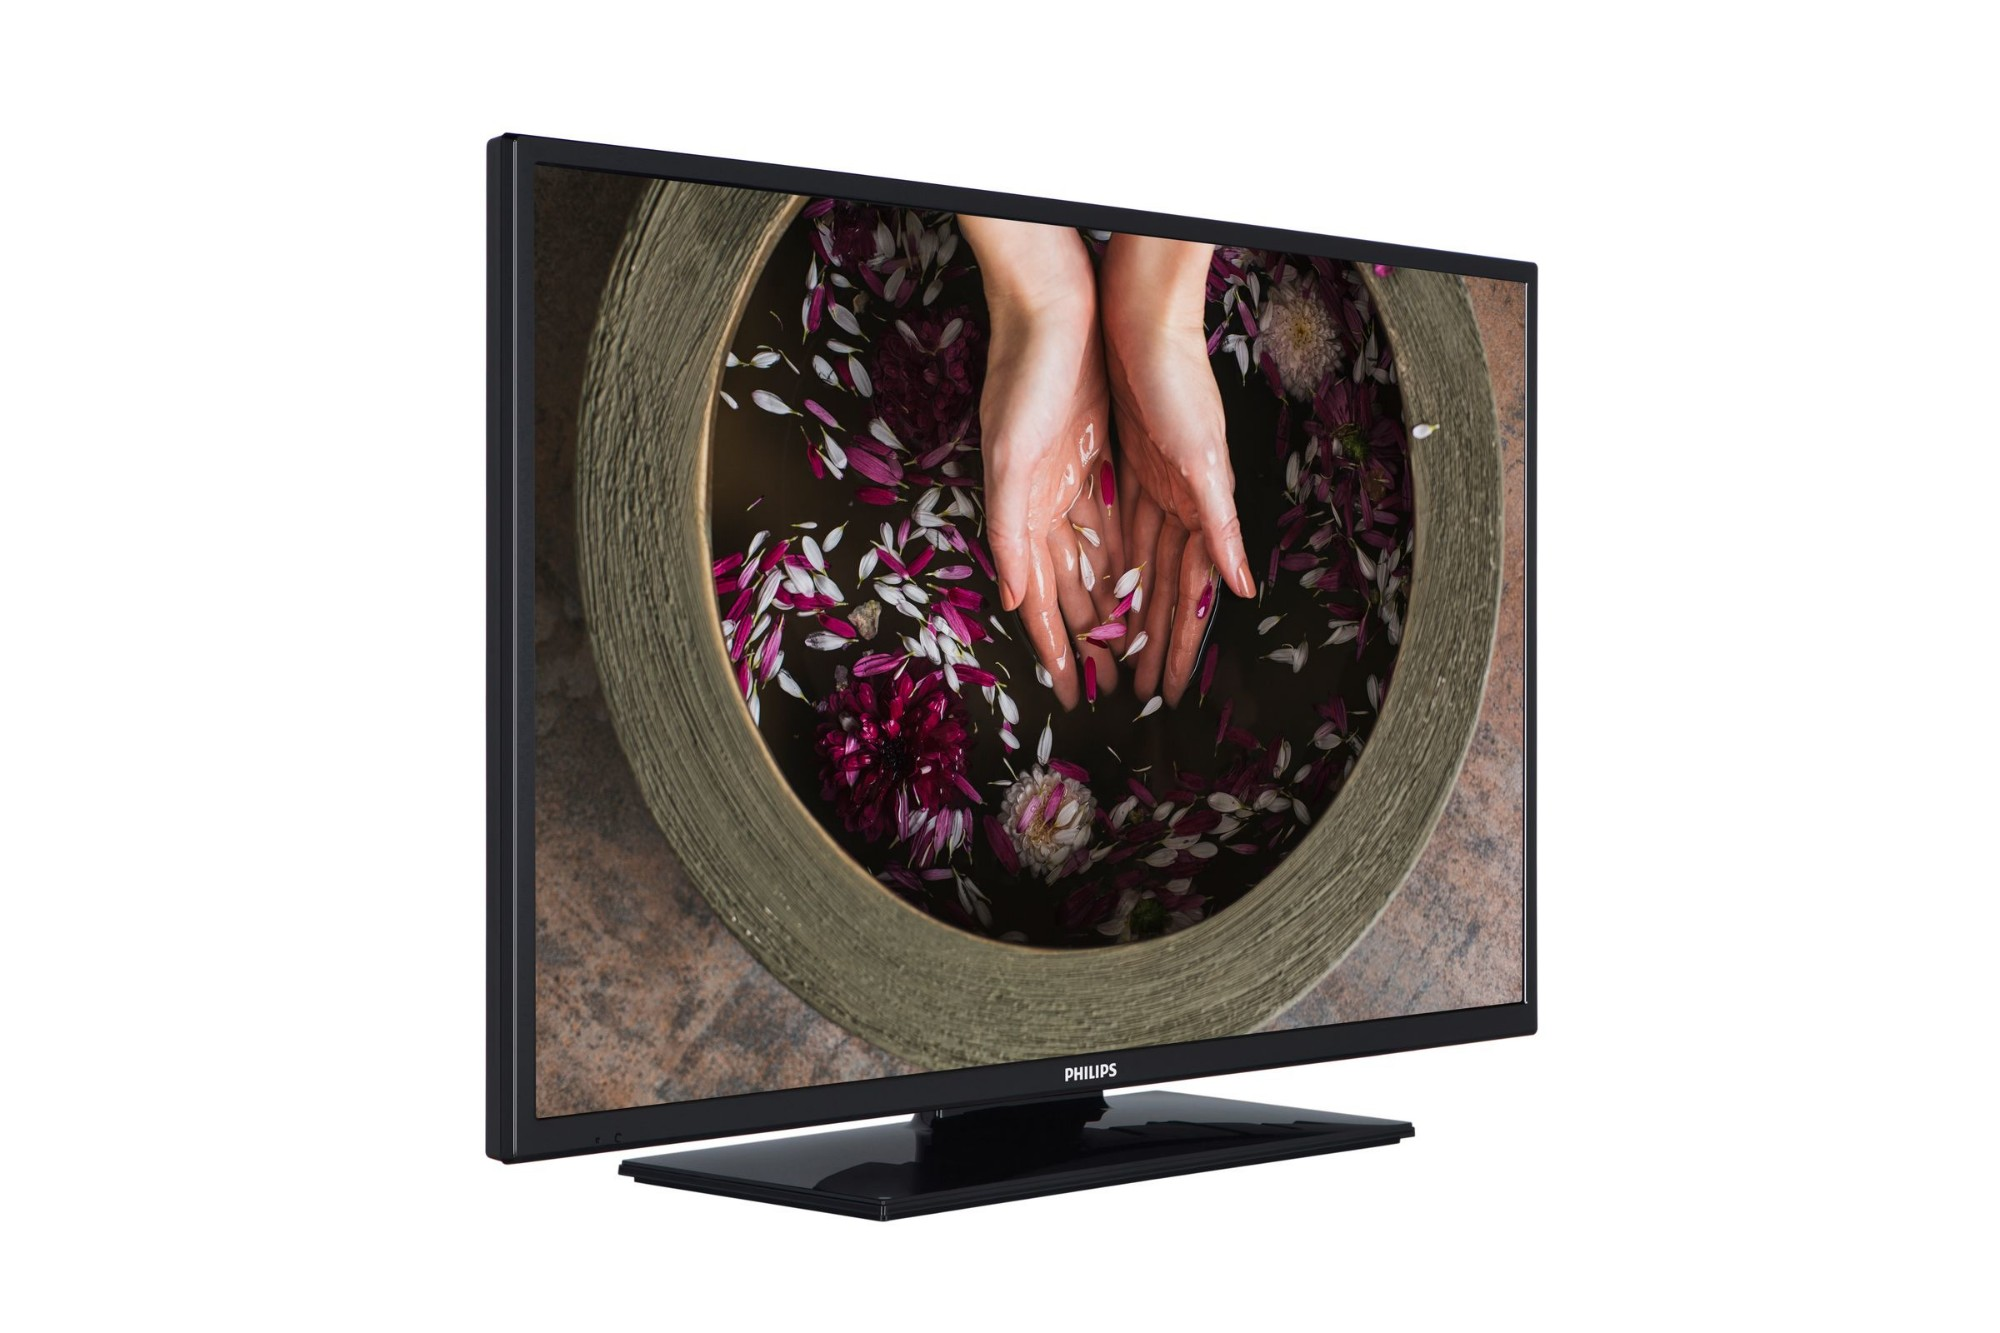 "Philips 48HFL2869T/12 hospitality TV 121.9 cm (48"") Full HD 300 cd/m² Black 16 W A++"